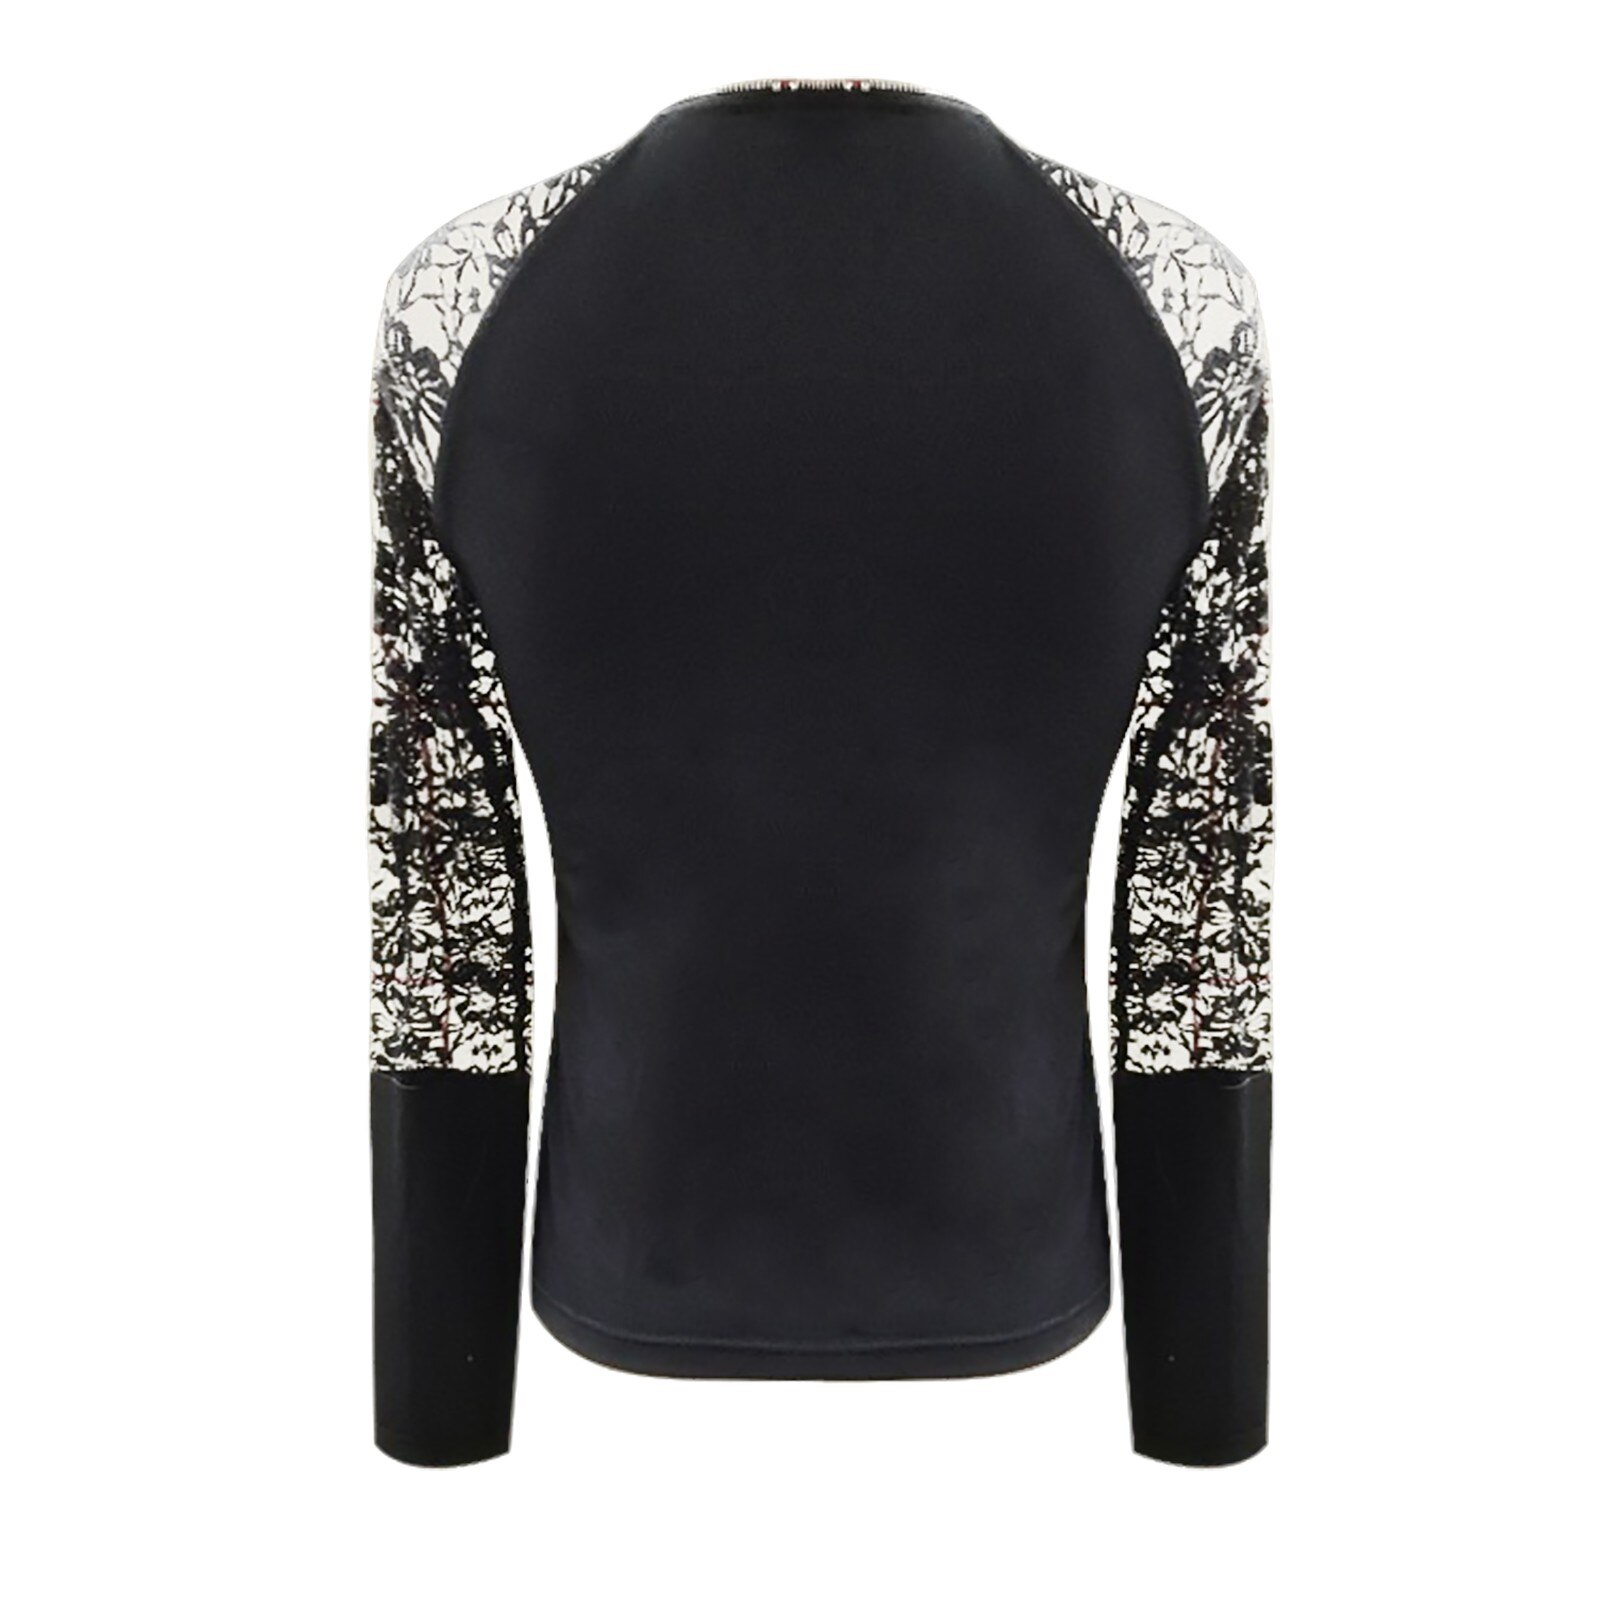 Zip V-neck Sexy T-shirt Women's Fashion Sexy Lace Zipper Long Sleeve Solid Color Pullover Tops Spring And Autumn Solid Color